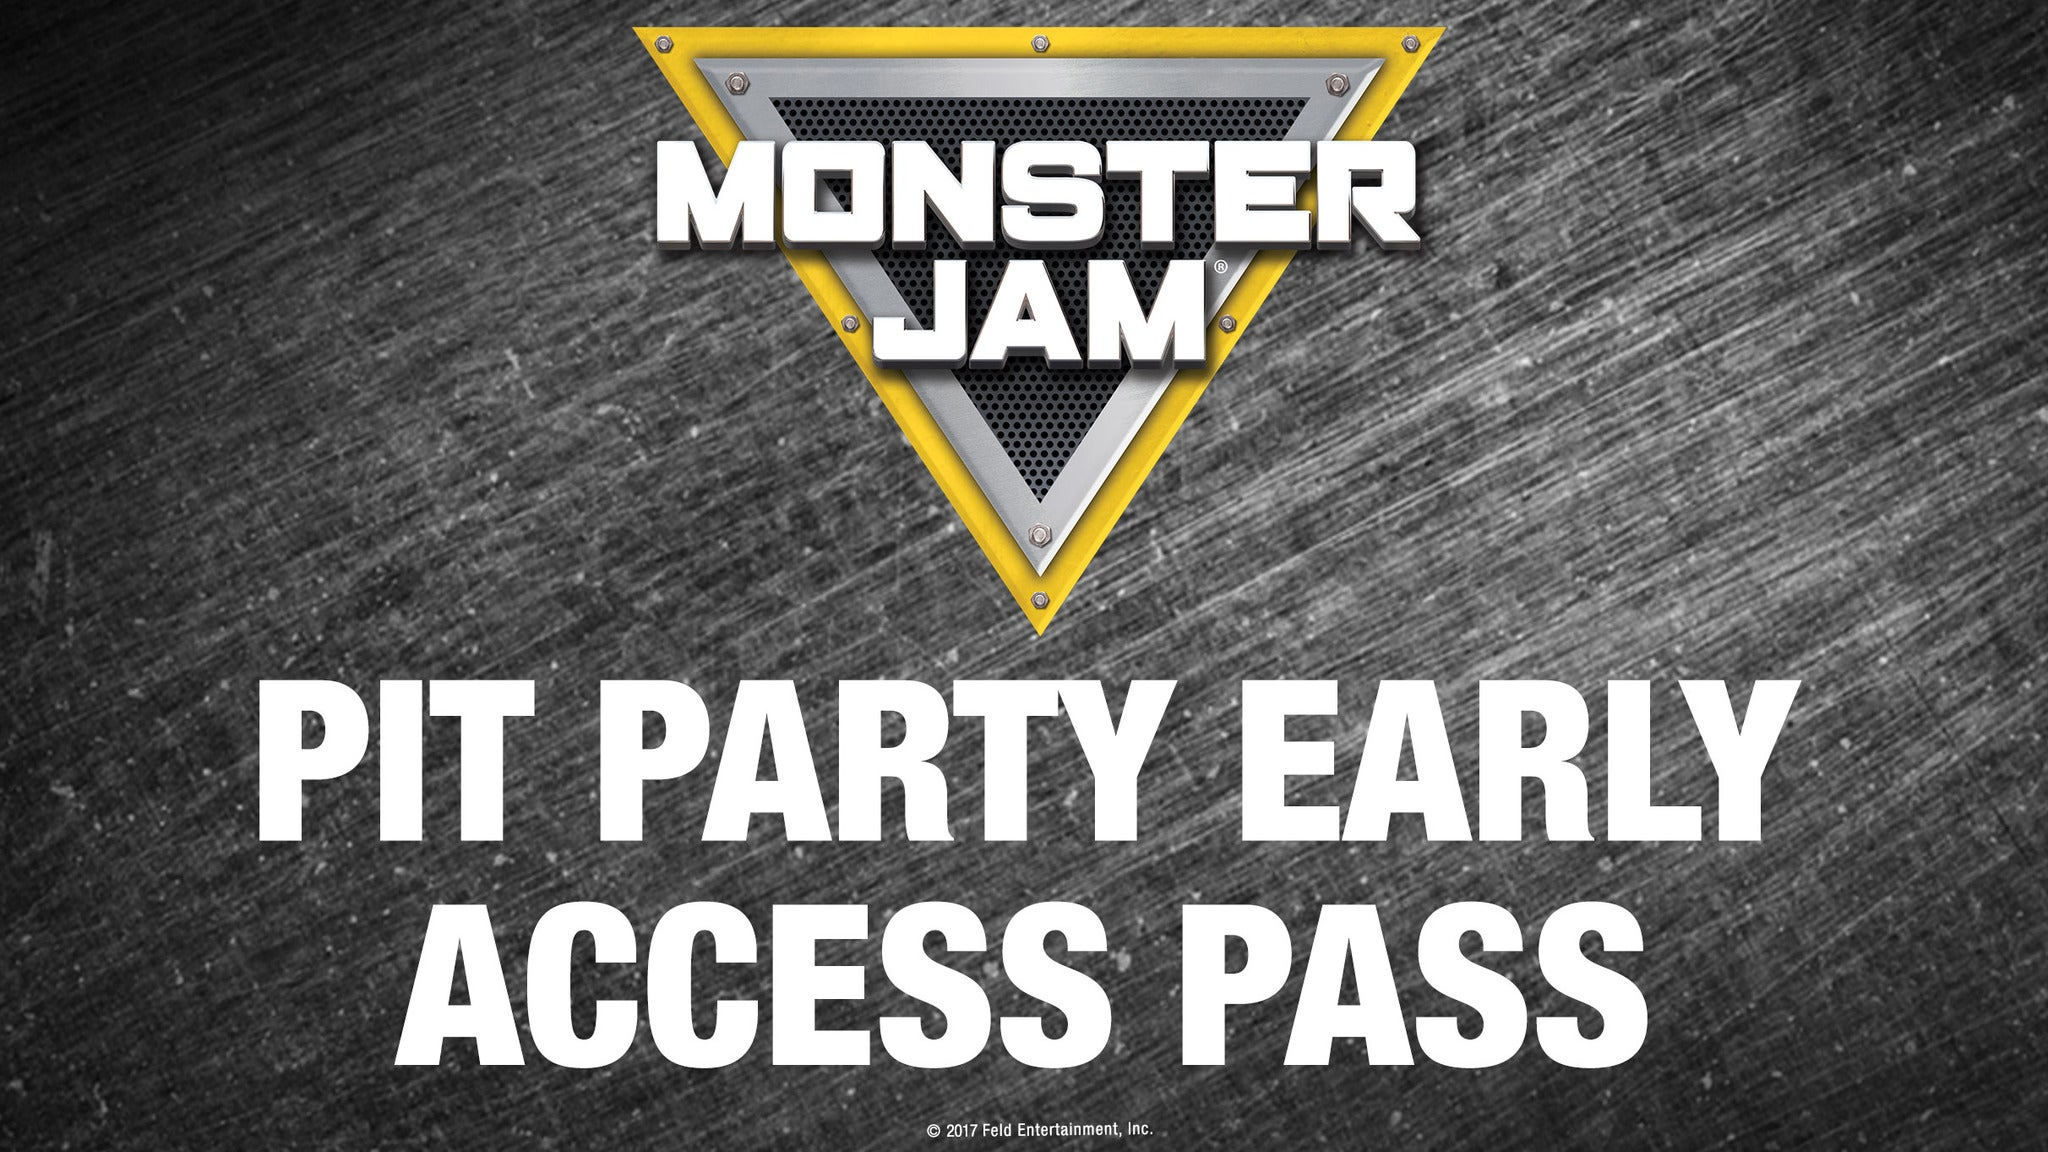 Monster Jam Pit Party Early Access Pass: Early Entry 1:30pm-2:30pm